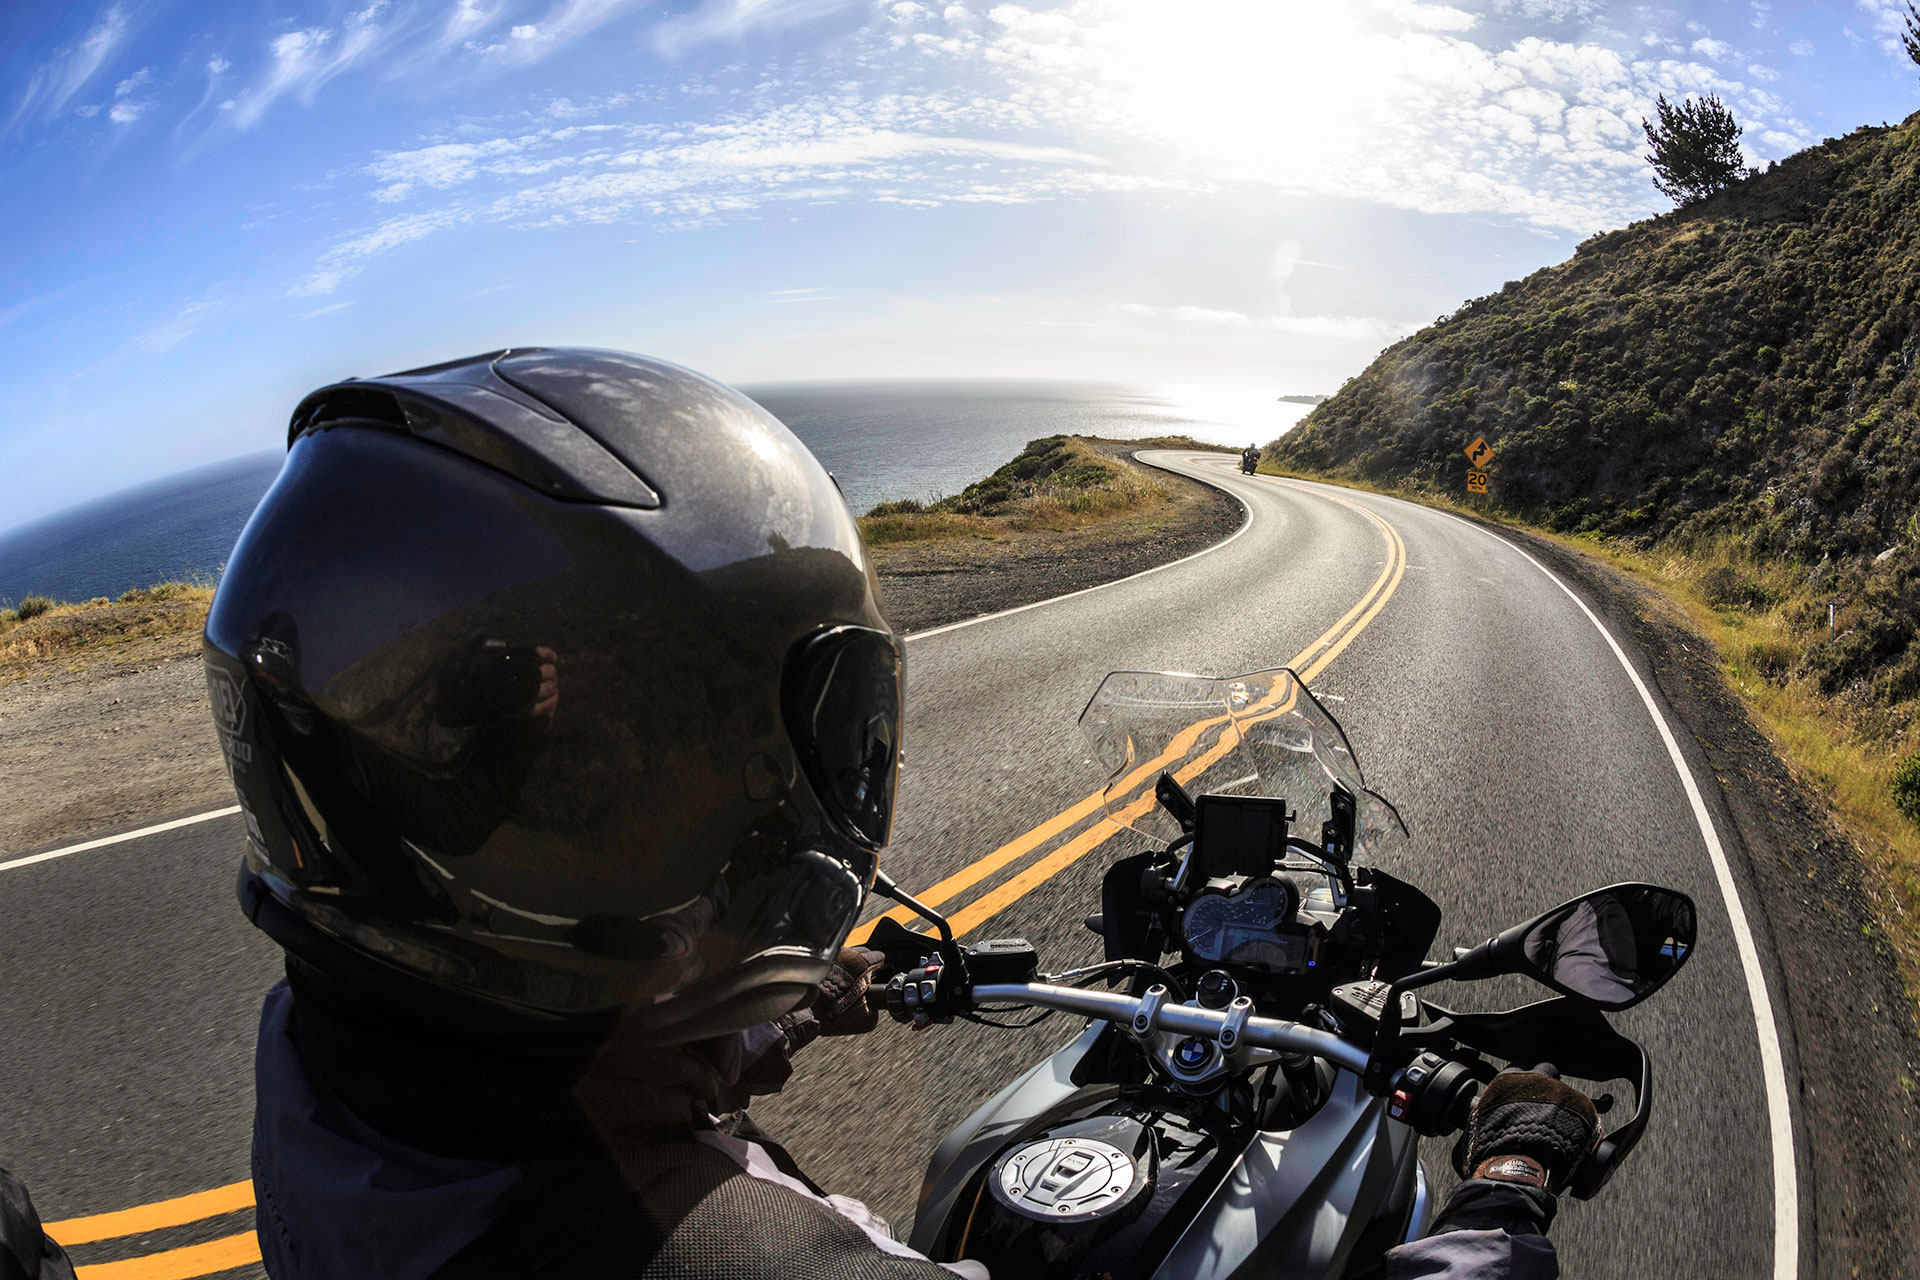 Mt. Tamalpais Park Highway Motorcycle Roads